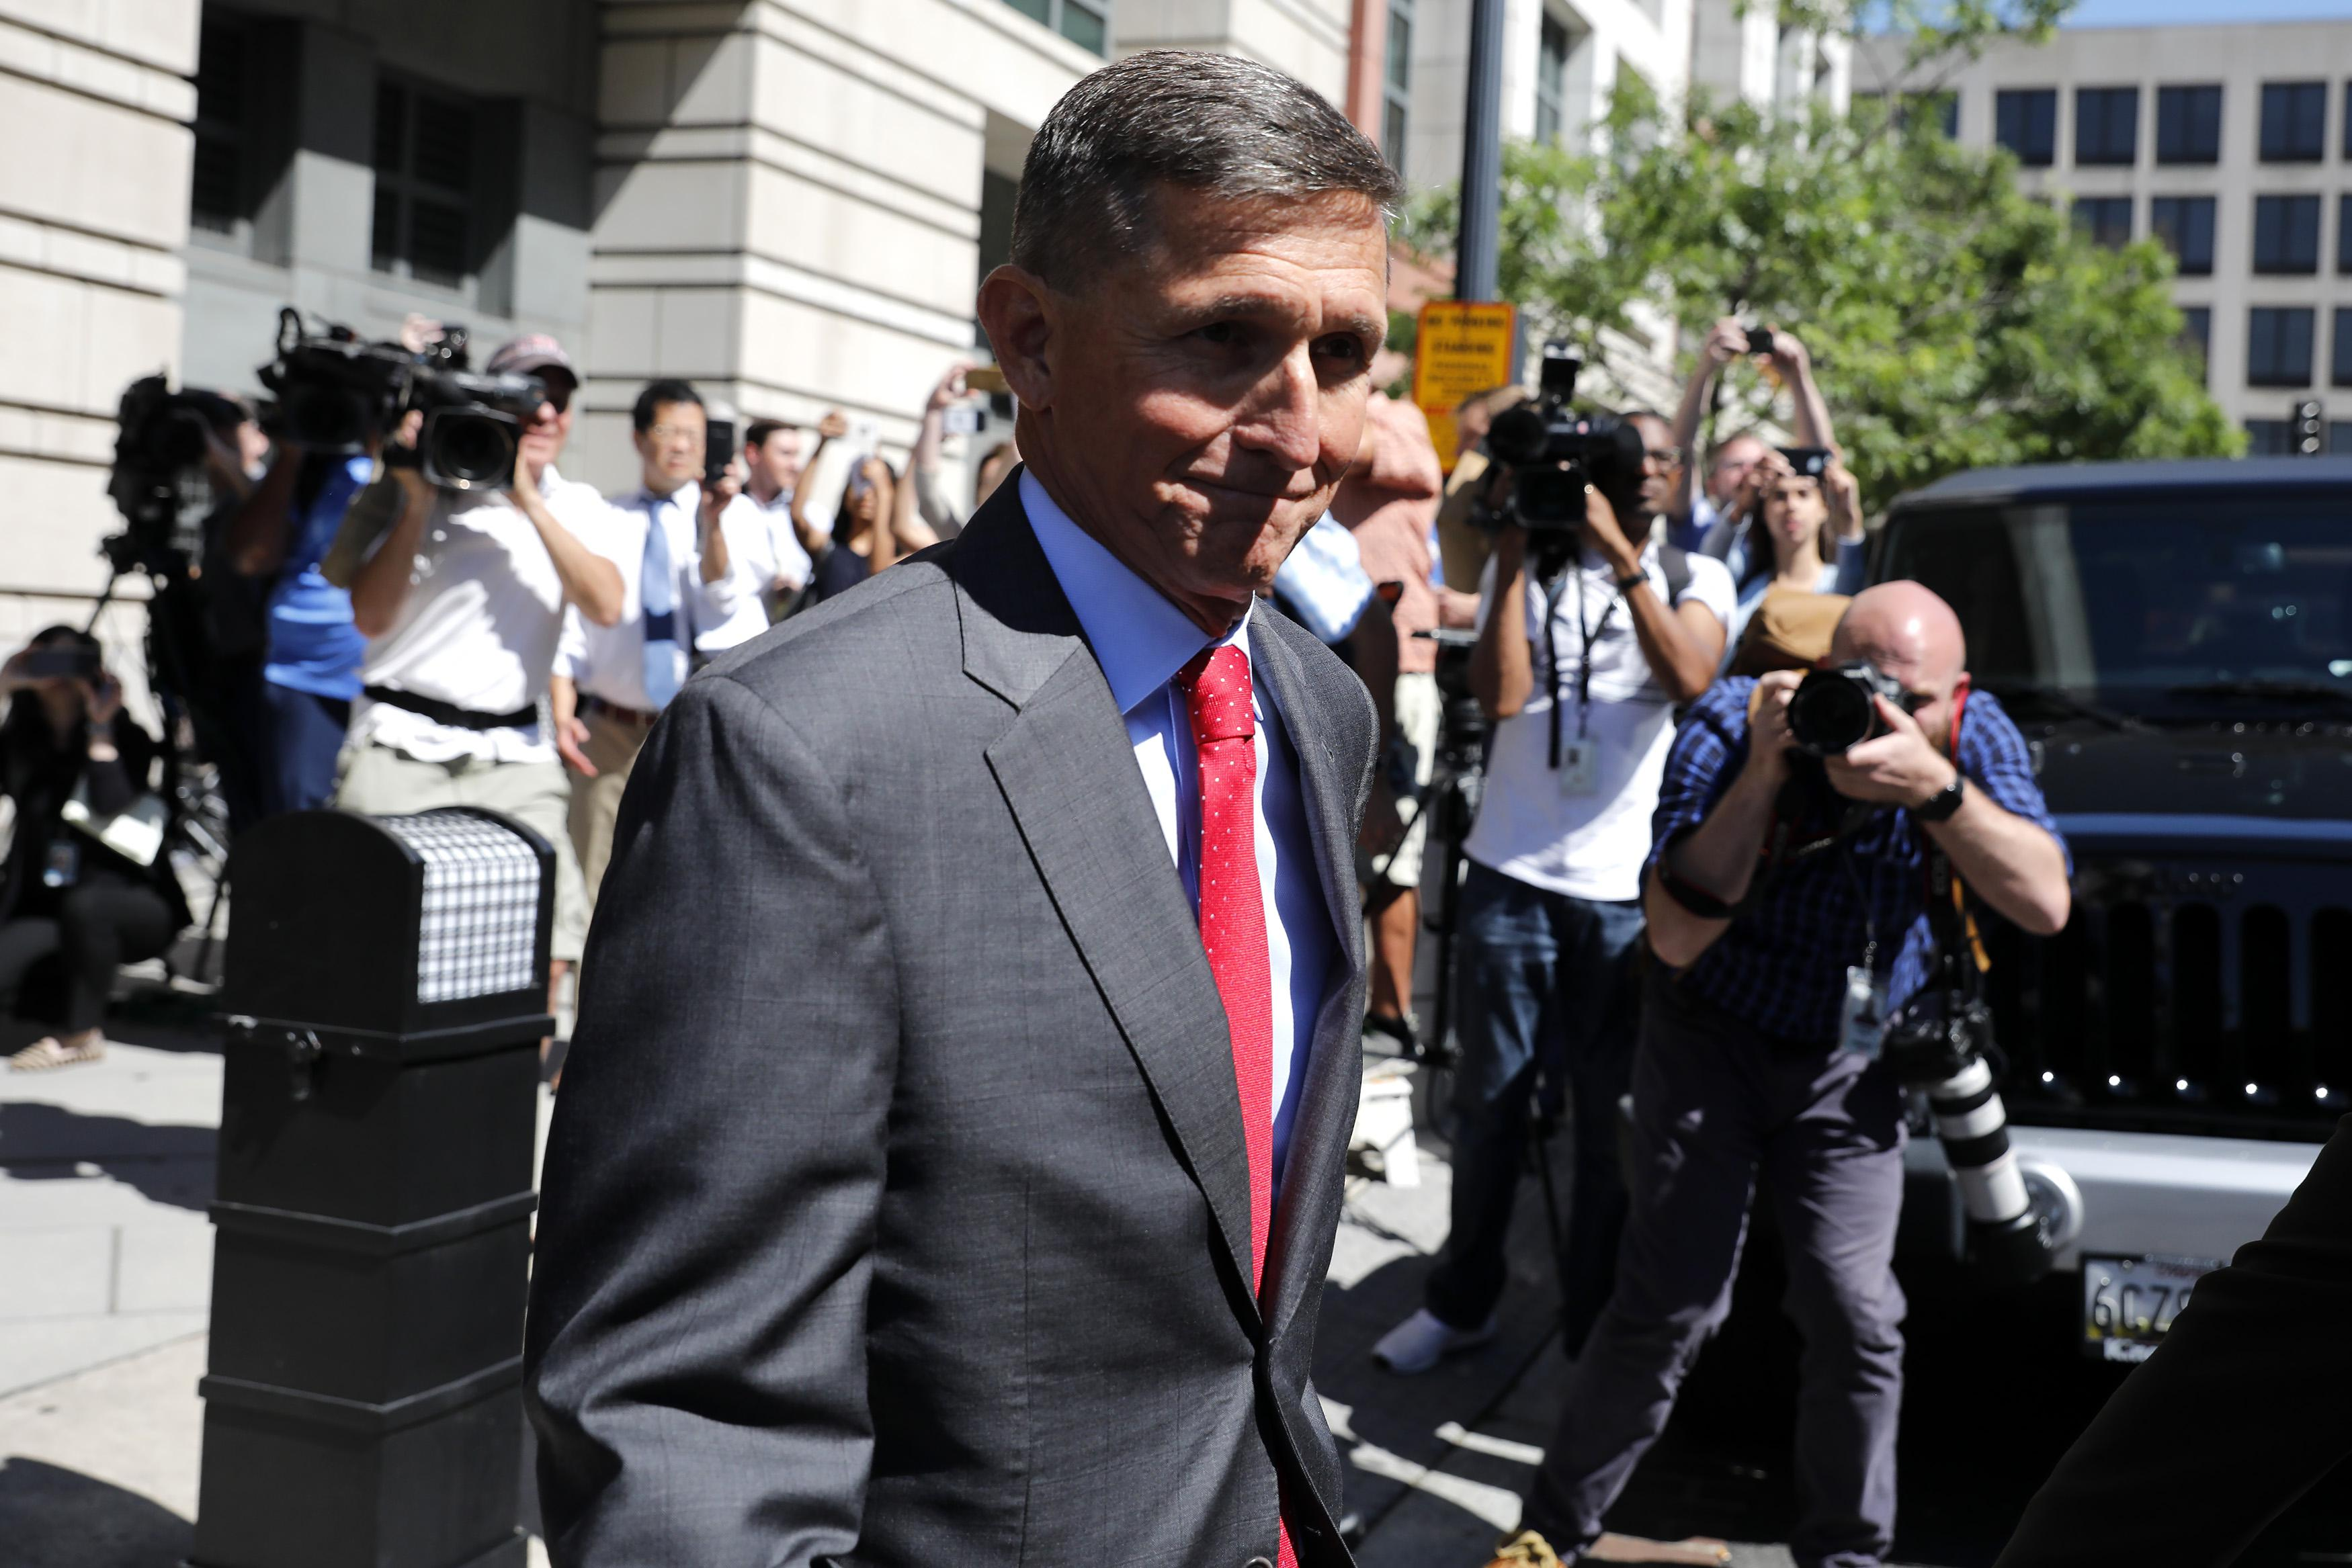 Michael Flynn outside a federal courthouse on July 10 in Washington.